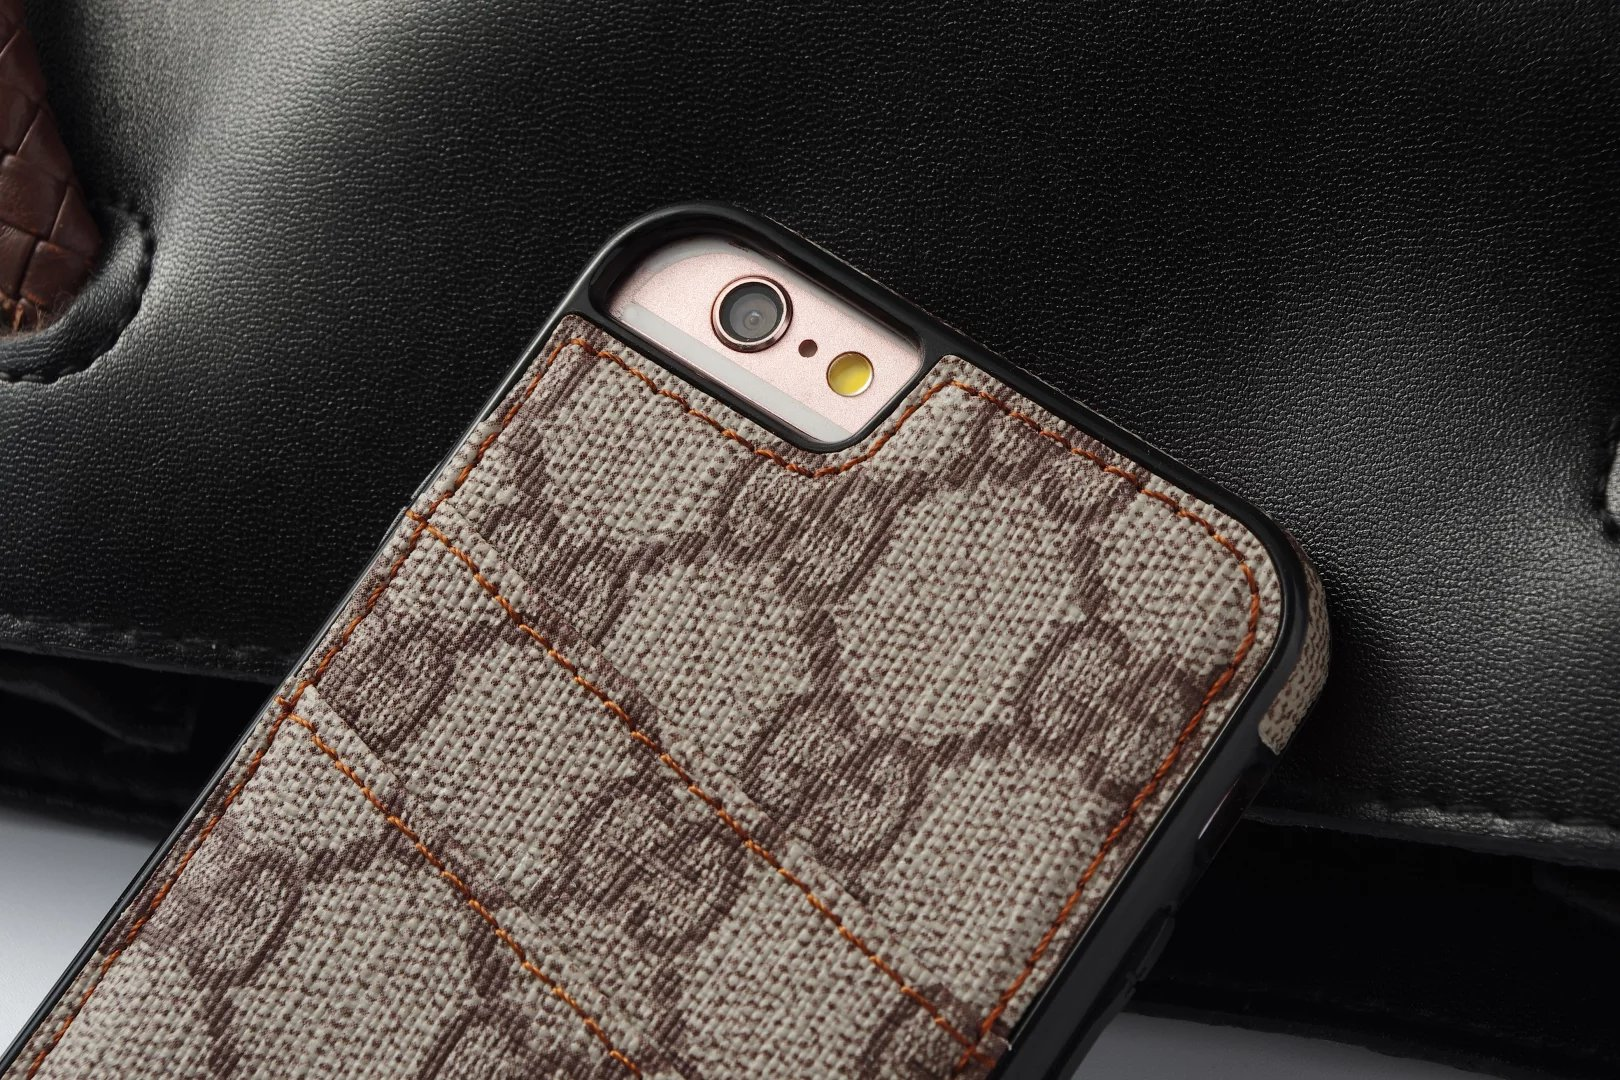 iphone gummihülle iphone hülle online shop Louis Vuitton iphone6s hülle apple iphone gerüchte das neue iphone 6 preis iphone 6s günstig iphone 6s lederhülle iphone 6s hülle designer iphone 6s a6s original